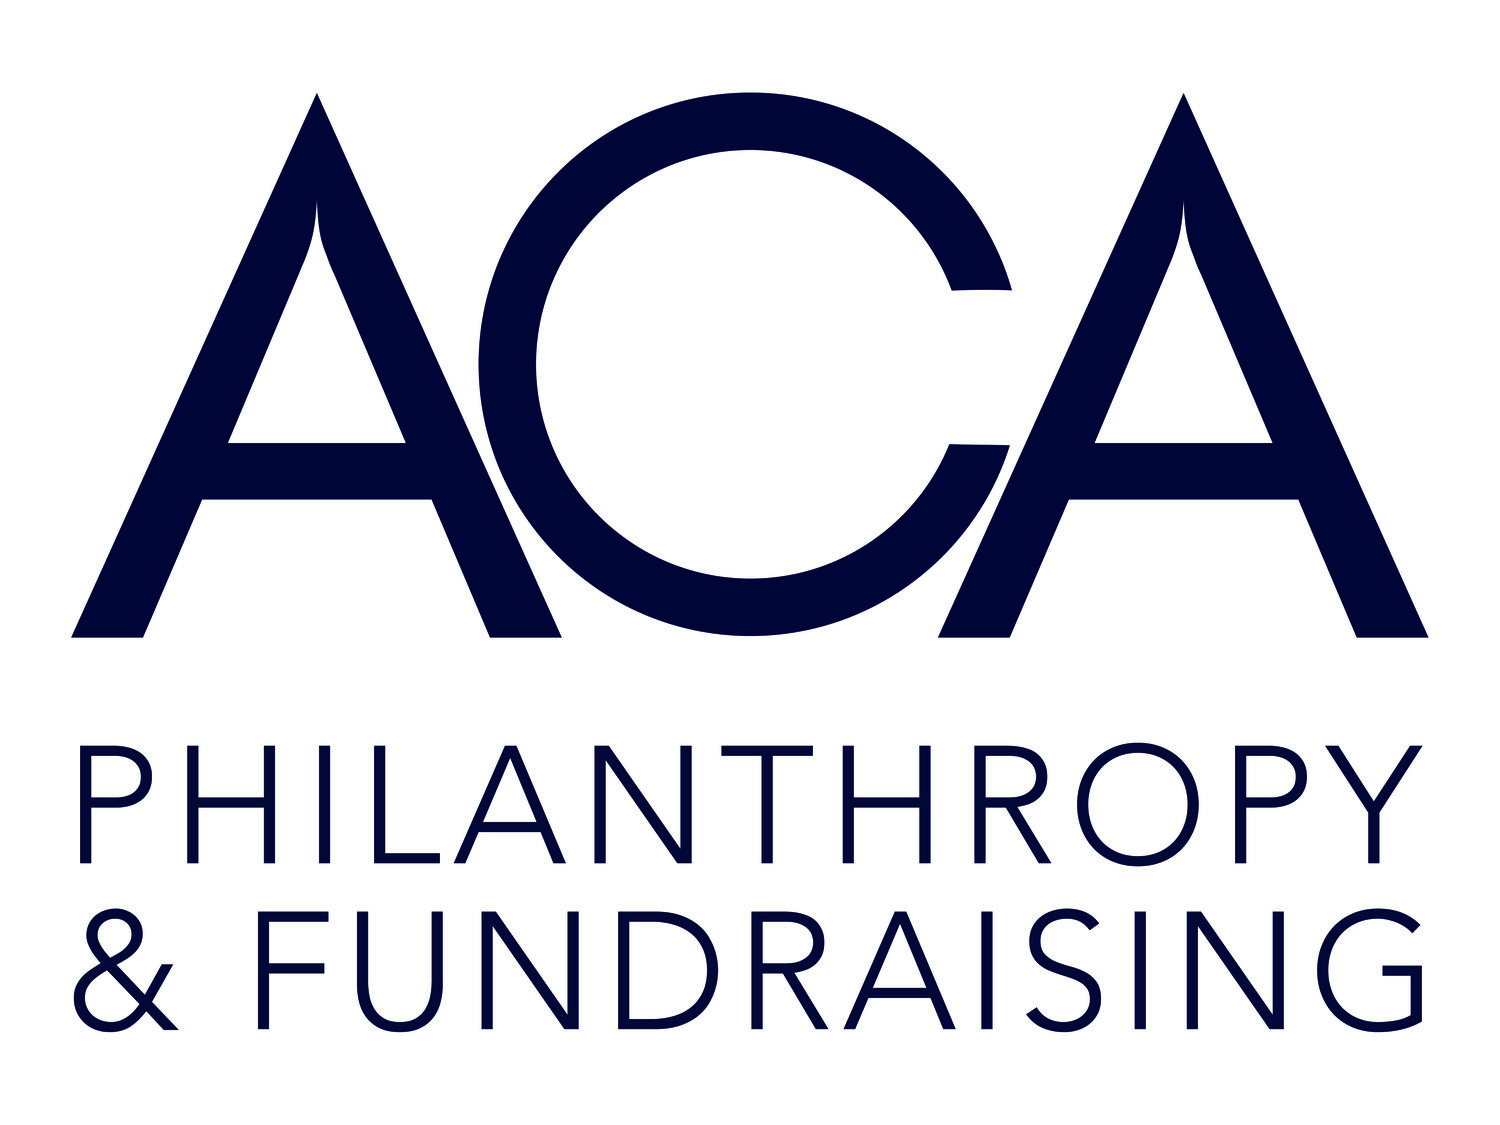 ACA Philanthropy and Fundraising